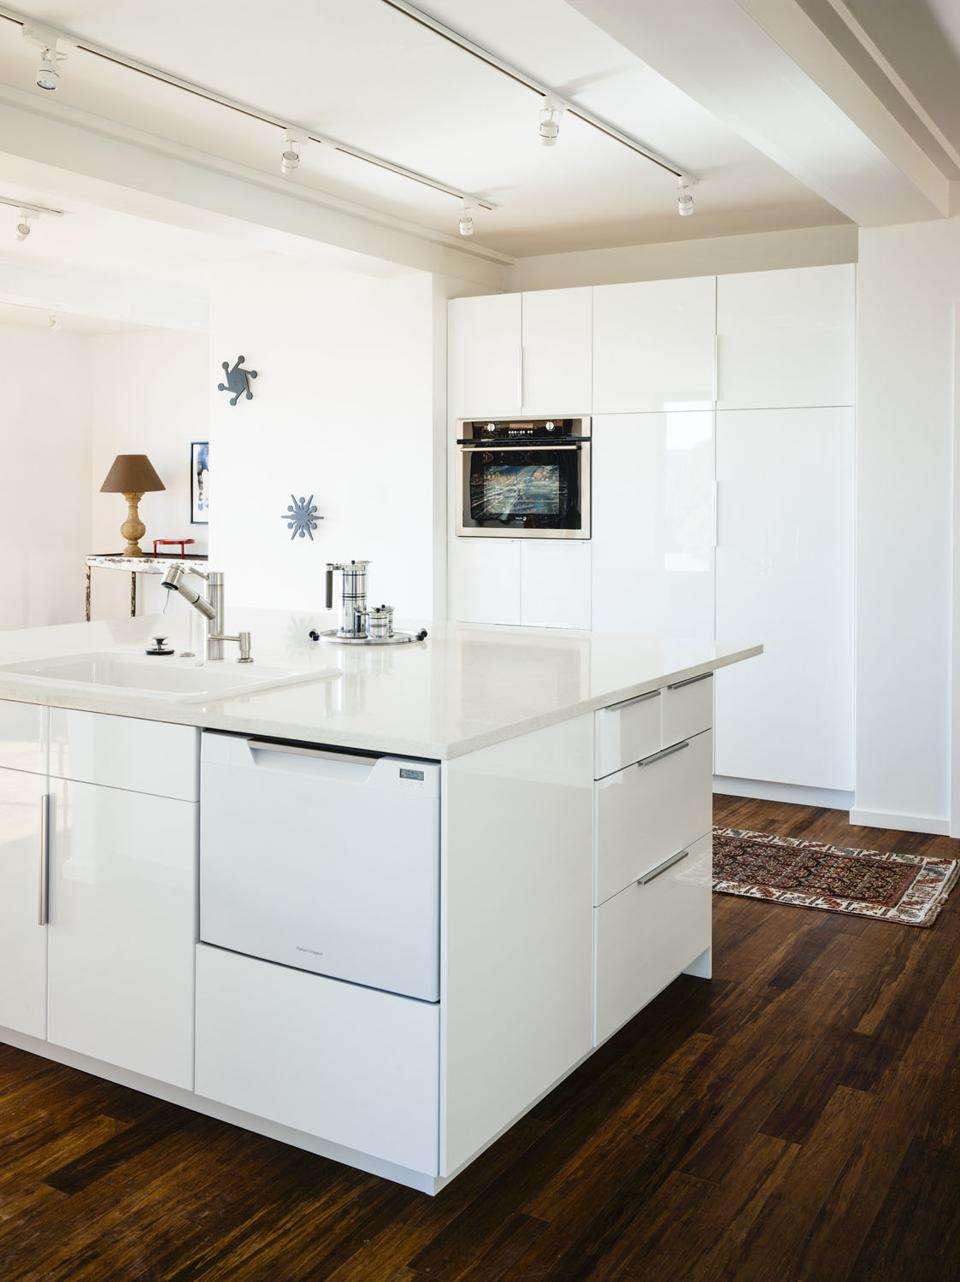 This Sonoma home has a dishwasher drawer making it easier to use than typical ones that open down.